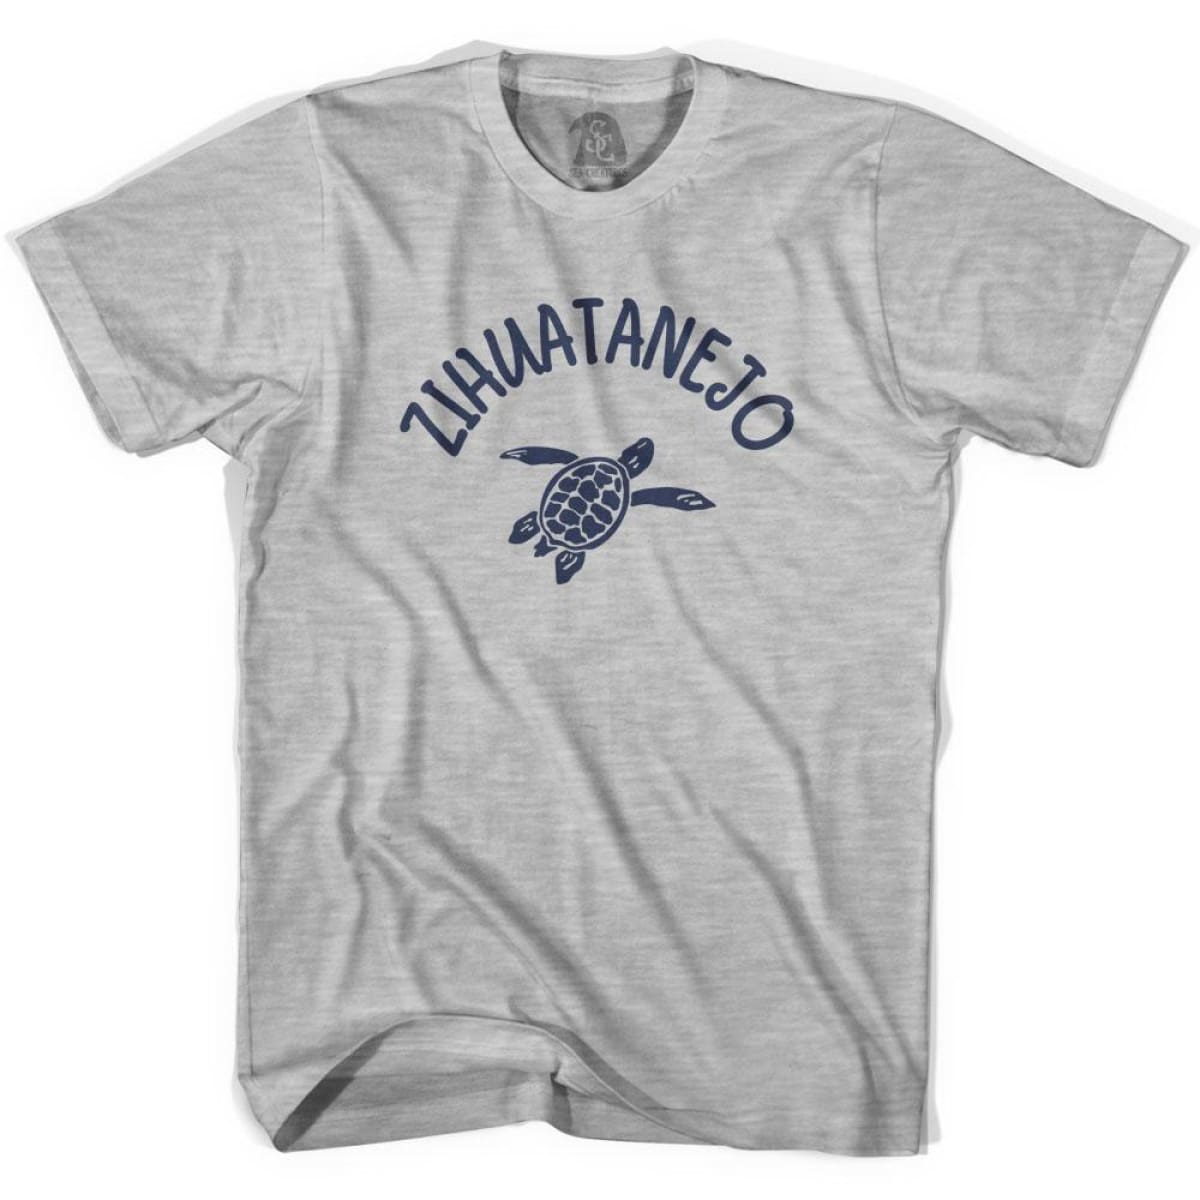 Zihuatanejo Beach Sea Turtle Adult Cotton T-shirt - Grey Heather / Adult Small - Turtle T-shirts